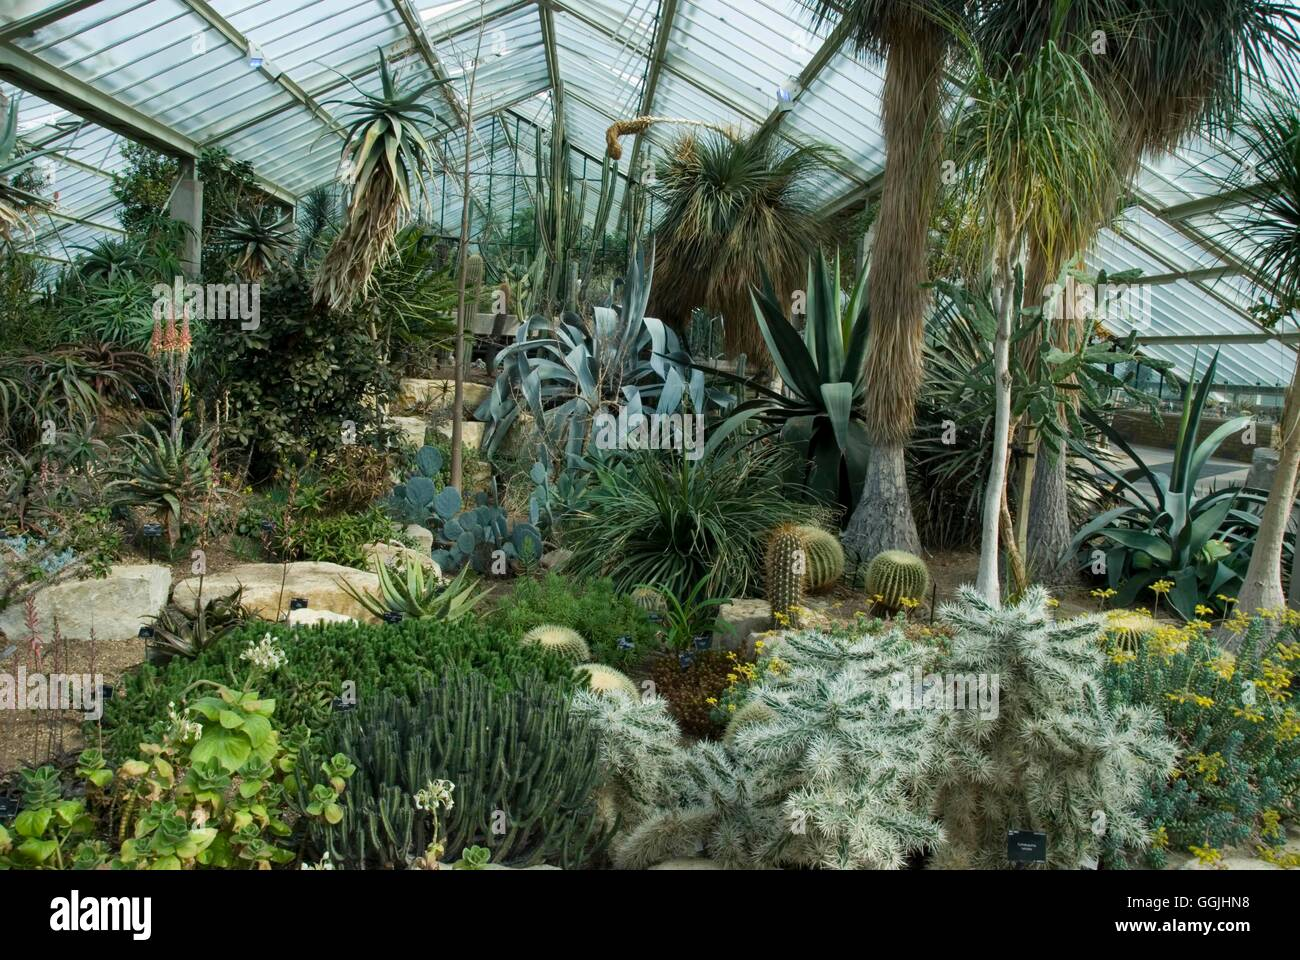 Royal Botanic Garden Kew    The Cacti And Succulent Section Of The Princess  Of Wales Glasshouse MIW253294 Compulsor